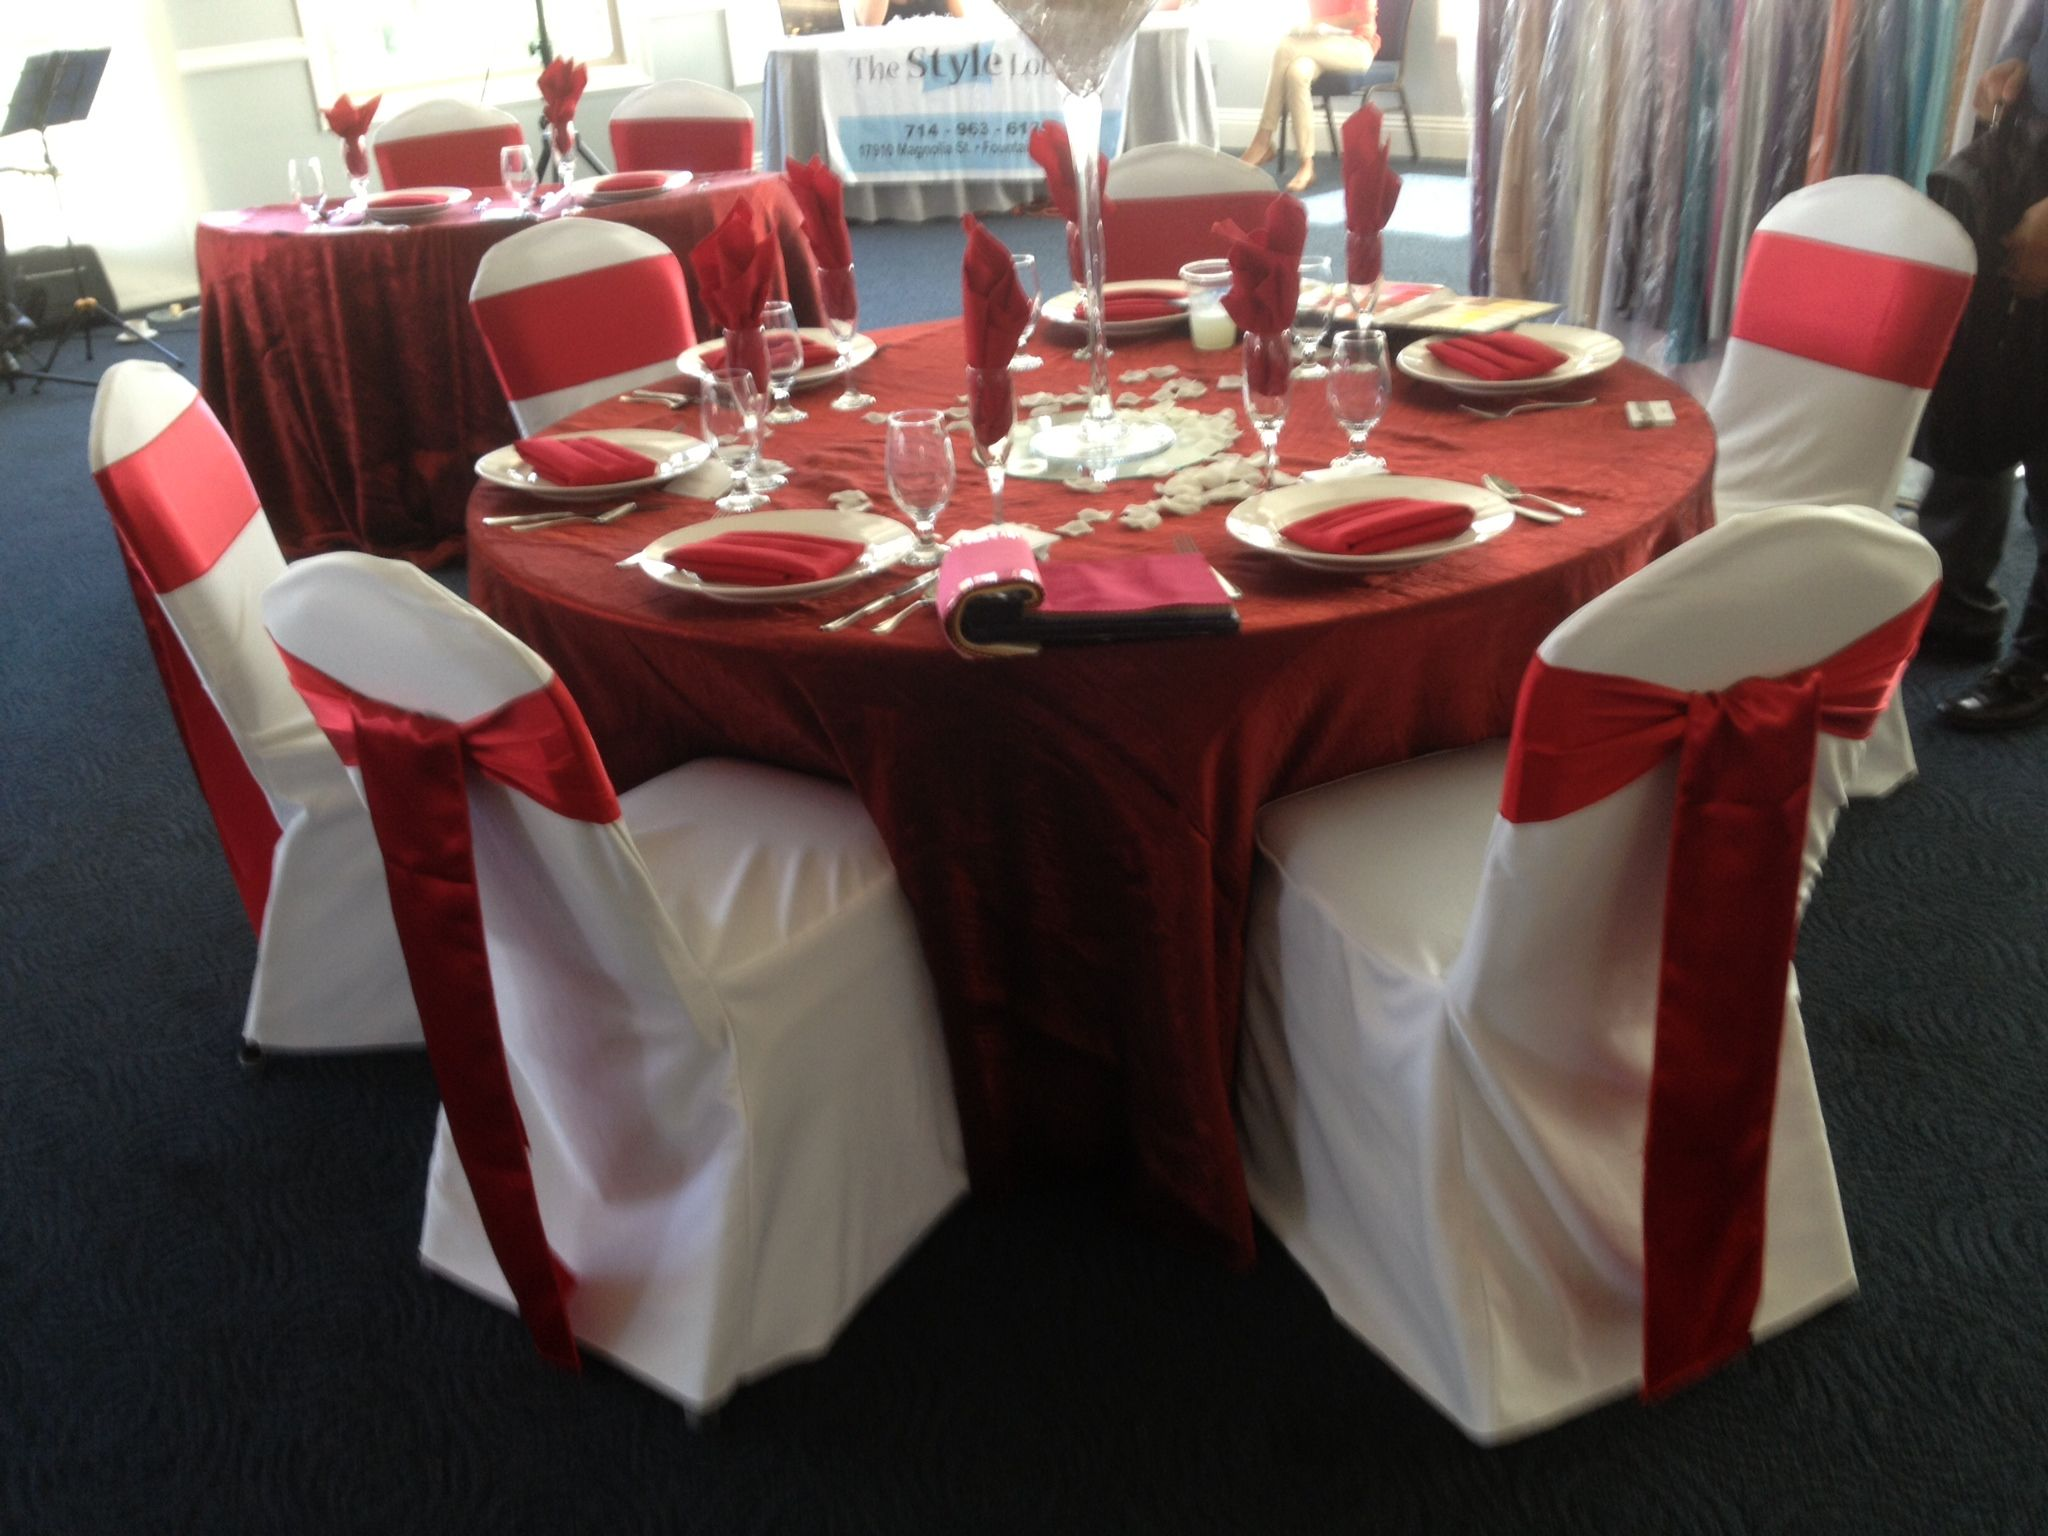 merry christmas chair covers desk leather white cover and red sash chaircovers chaircover